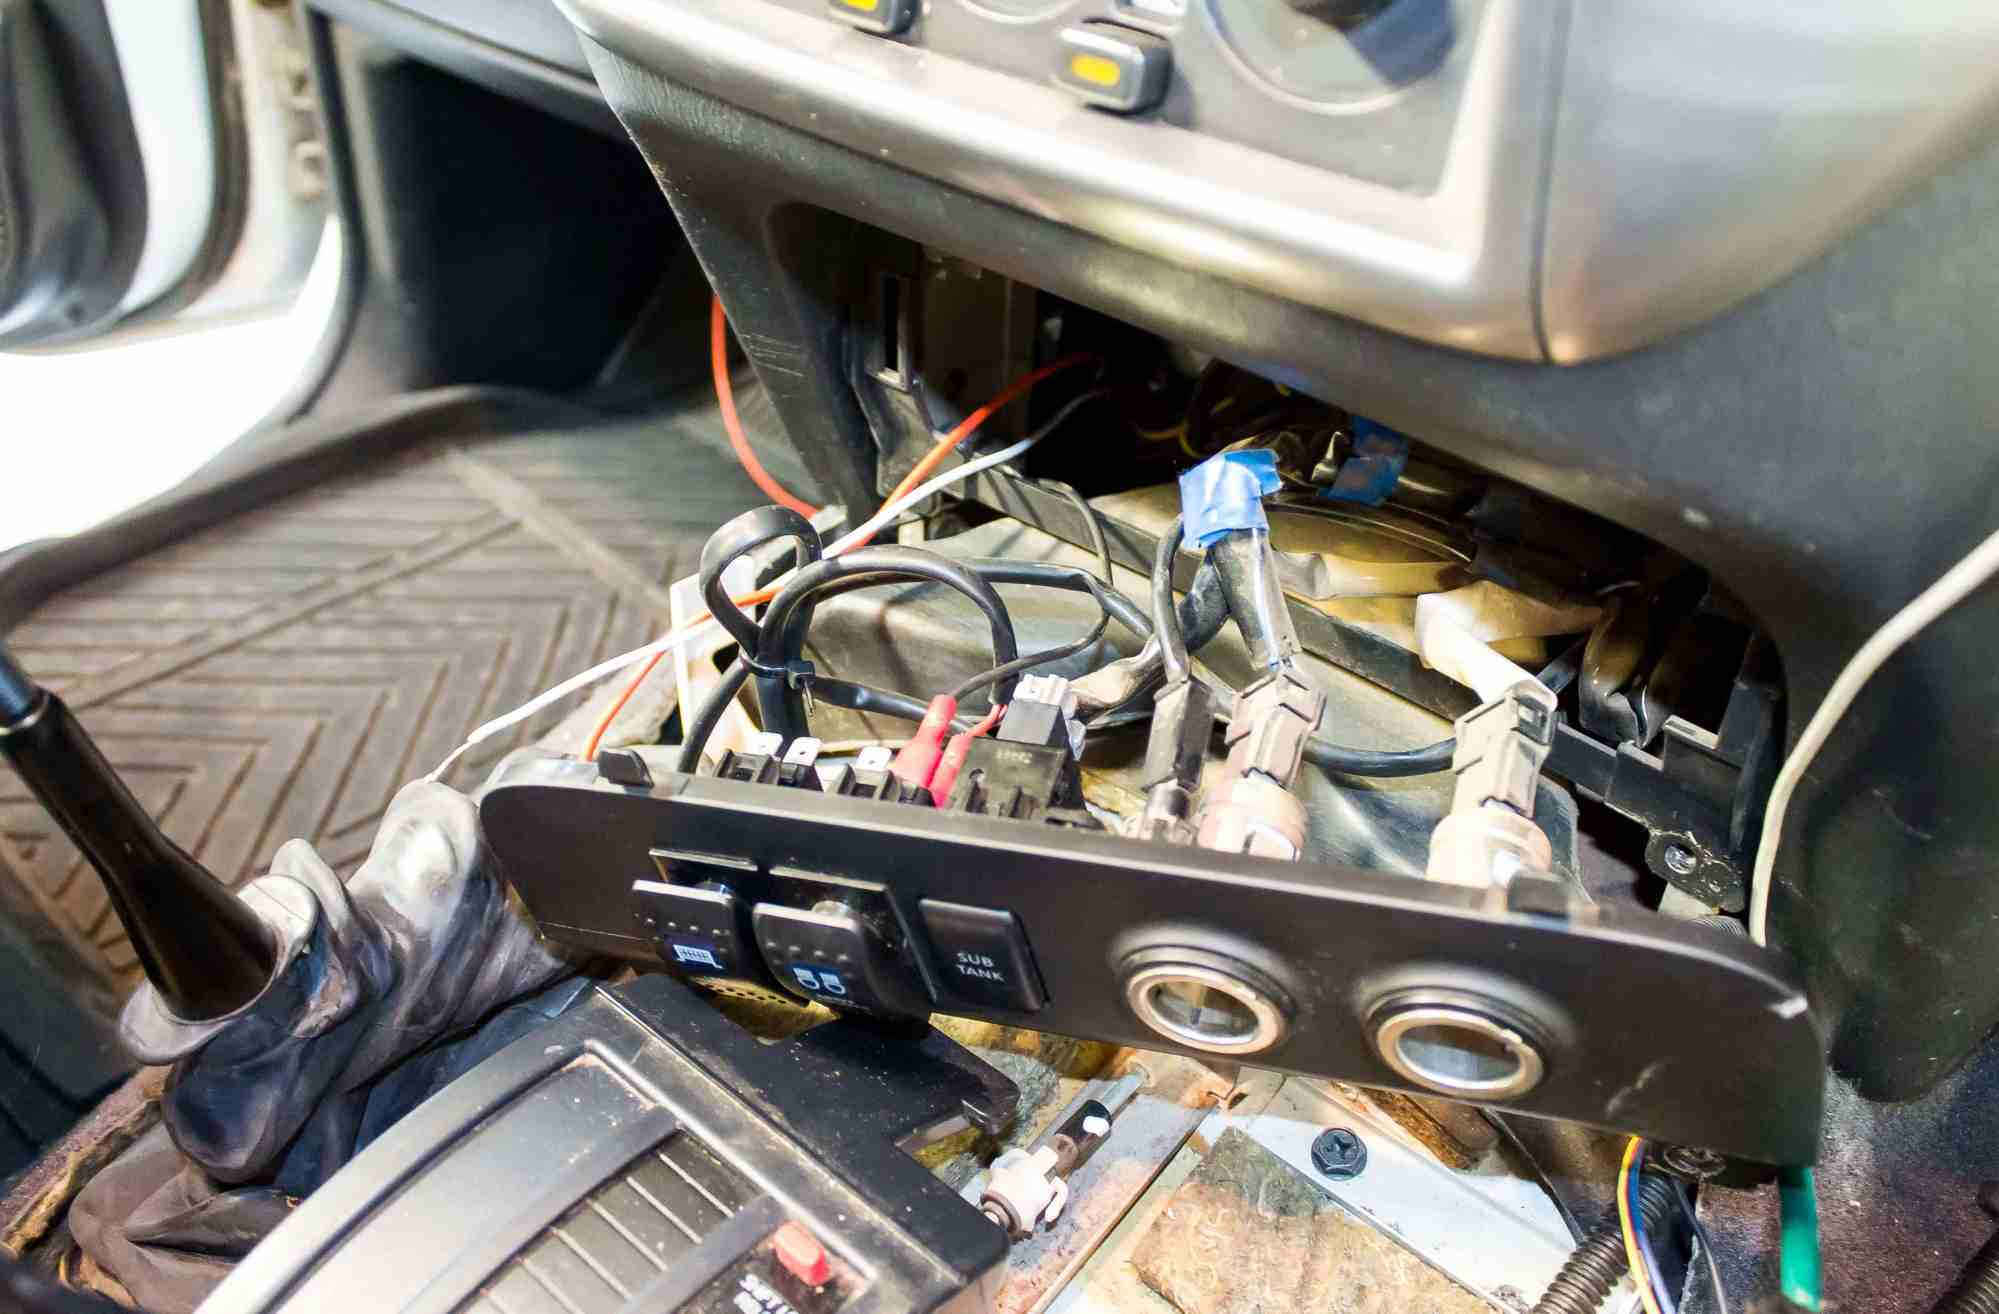 hight resolution of the wiring loom included all the necessary components to wire up the led bar legally fuse relay and a cable to tap to the high beam circuit